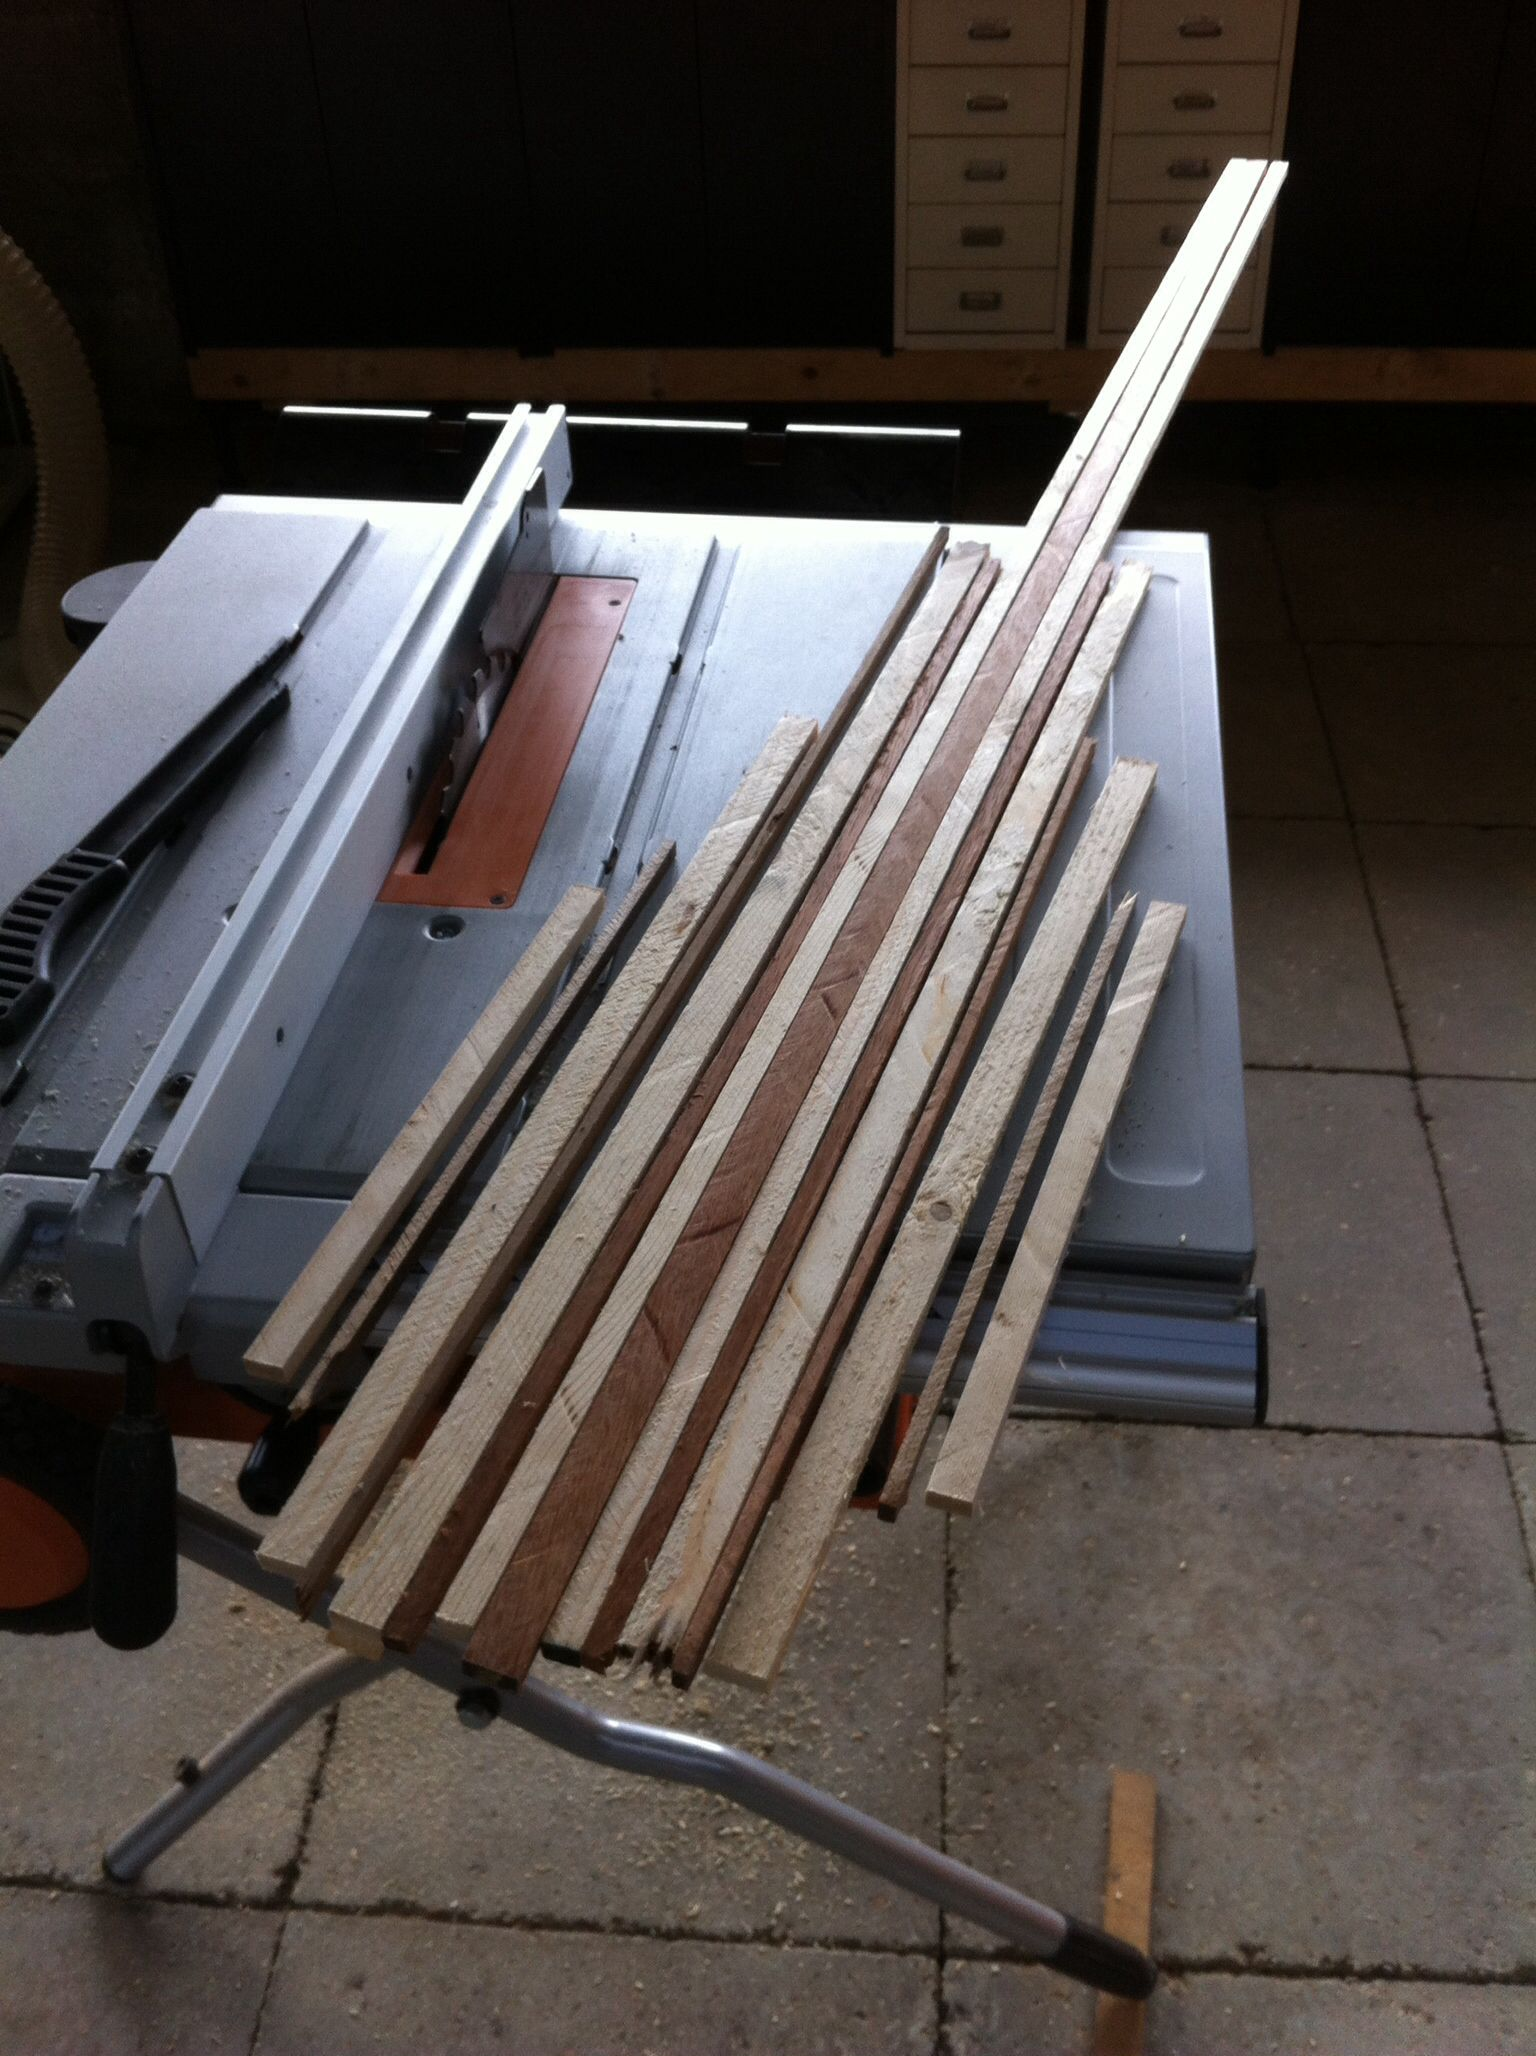 Building my first paddle 1 | Canoes and Paddles | Wooden paddle, Wooden canoe, Wooden boat building